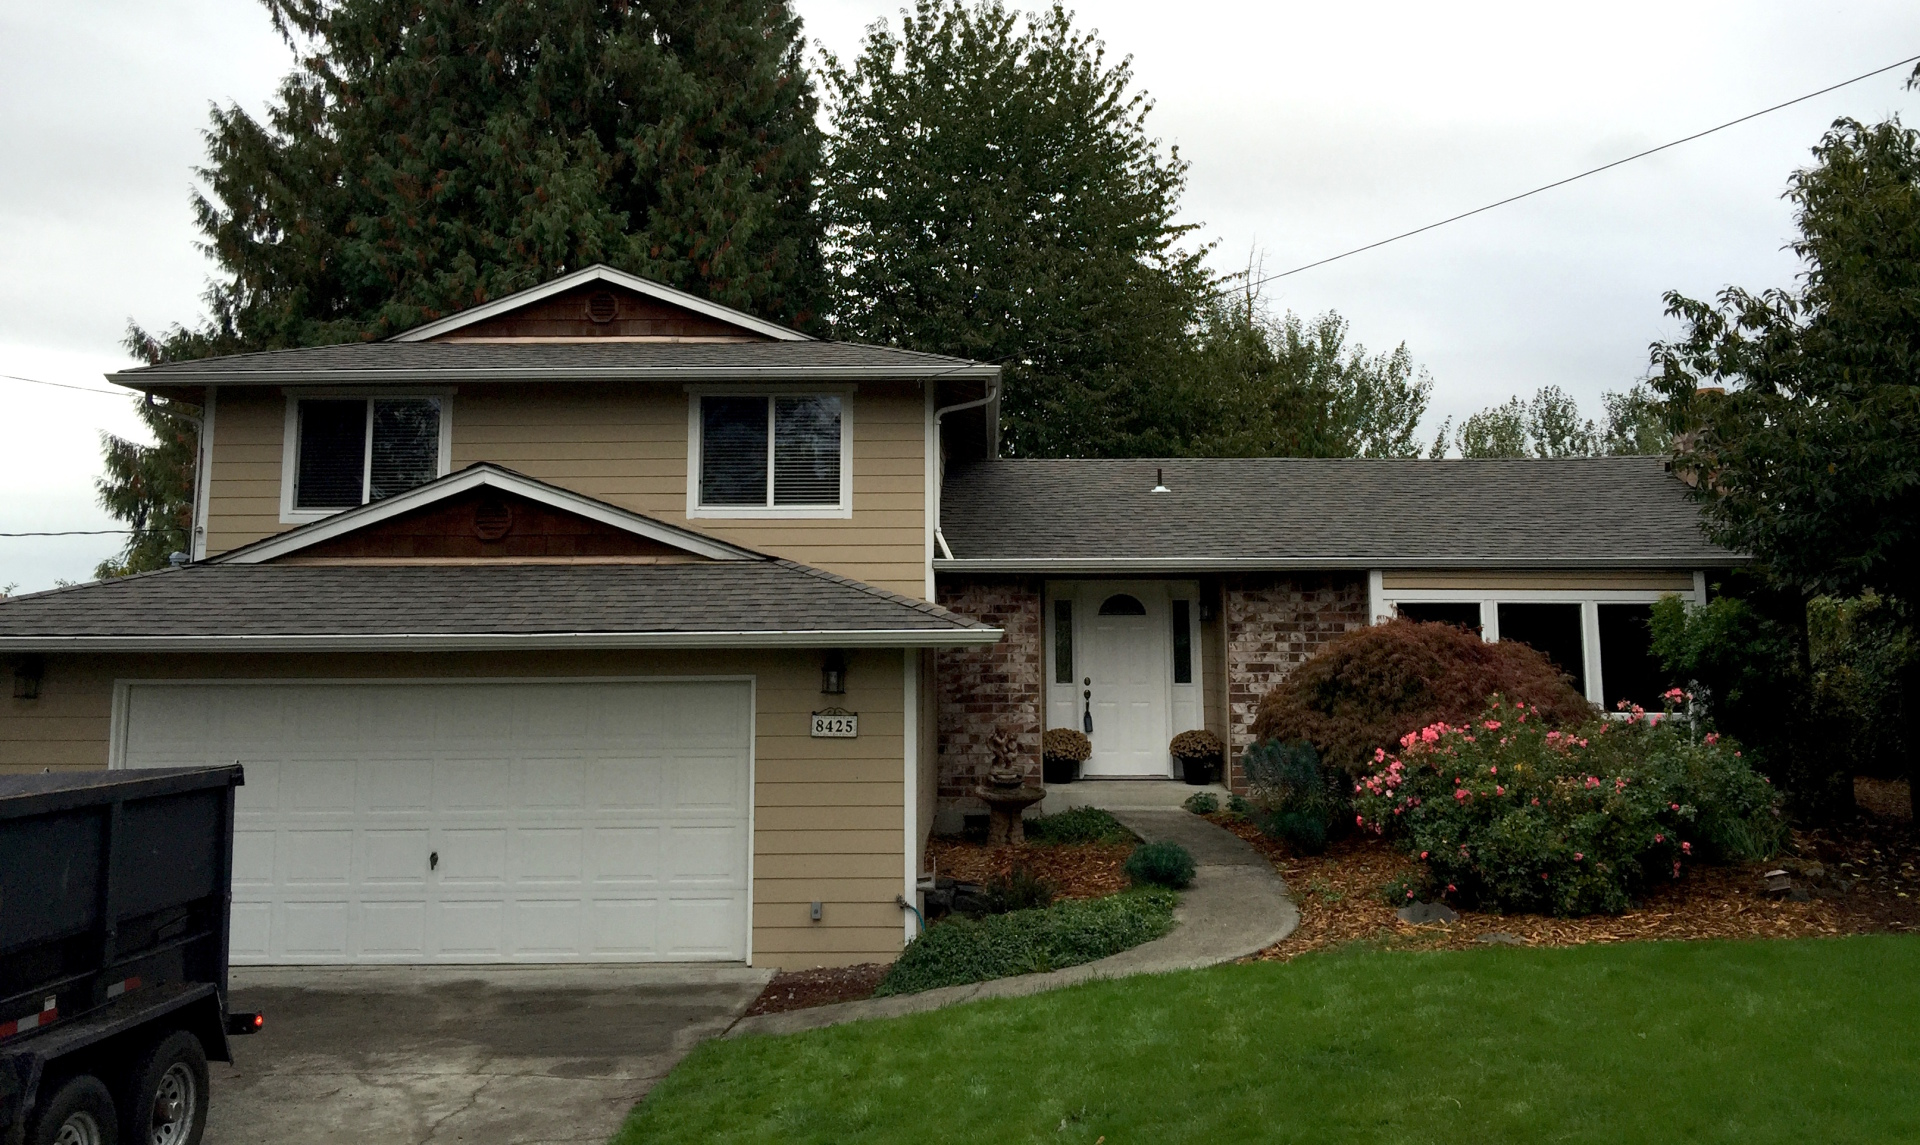 Residential Reroof Contractor in Puyallup, WA